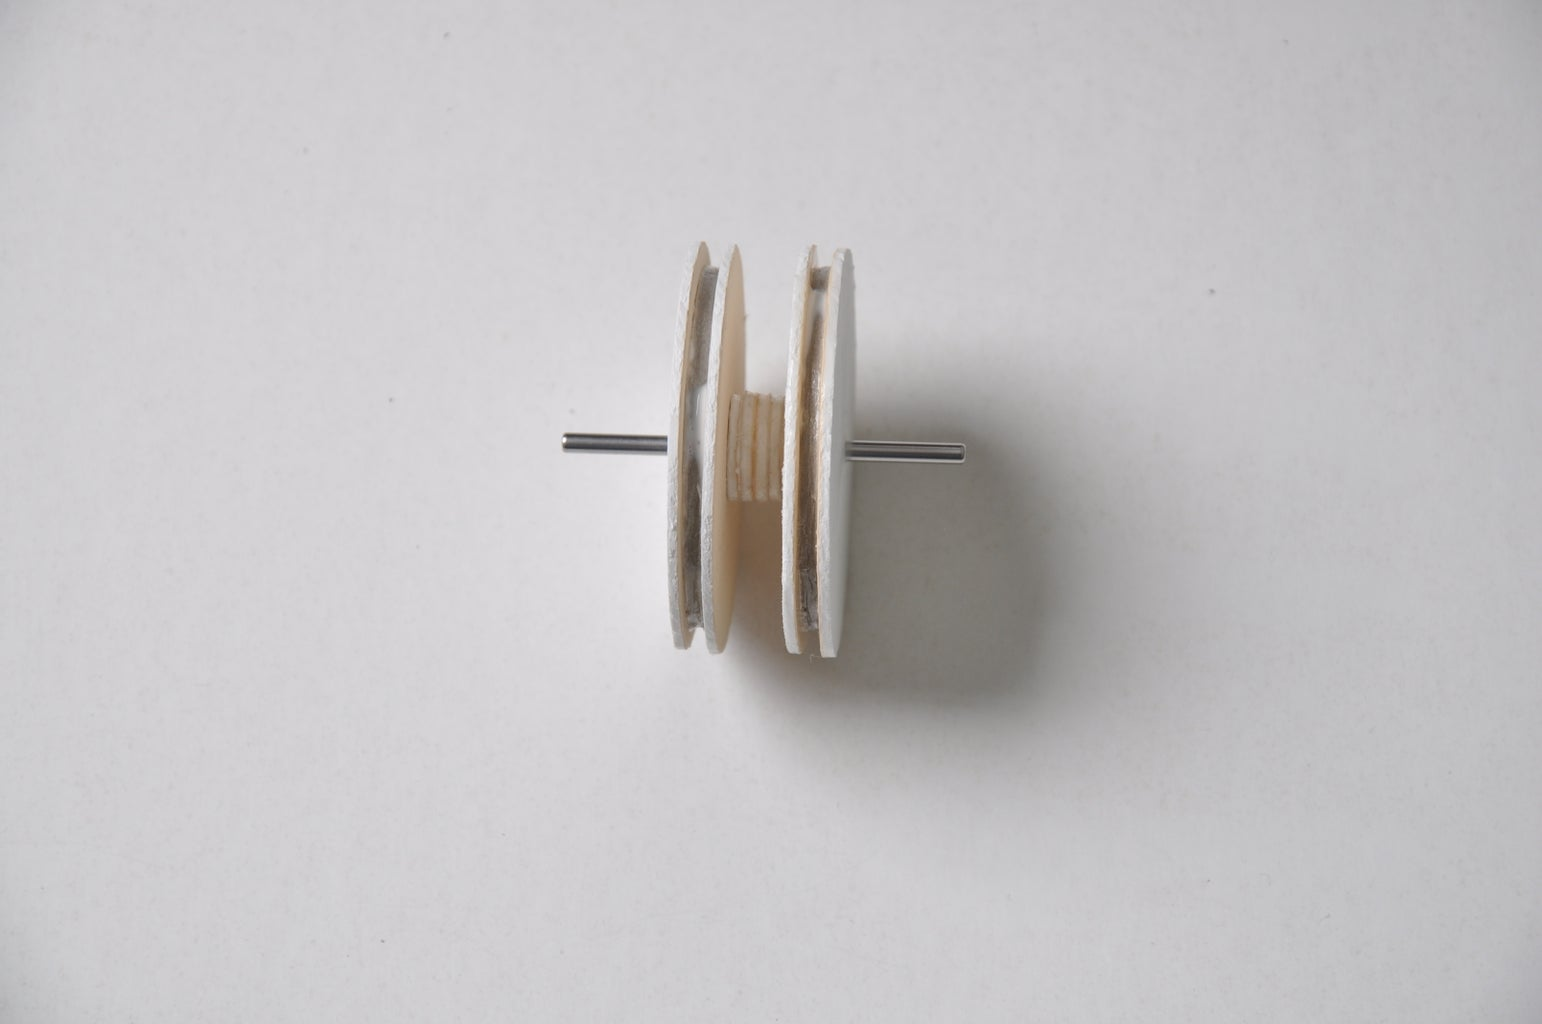 Making the Rubber Band Wheels